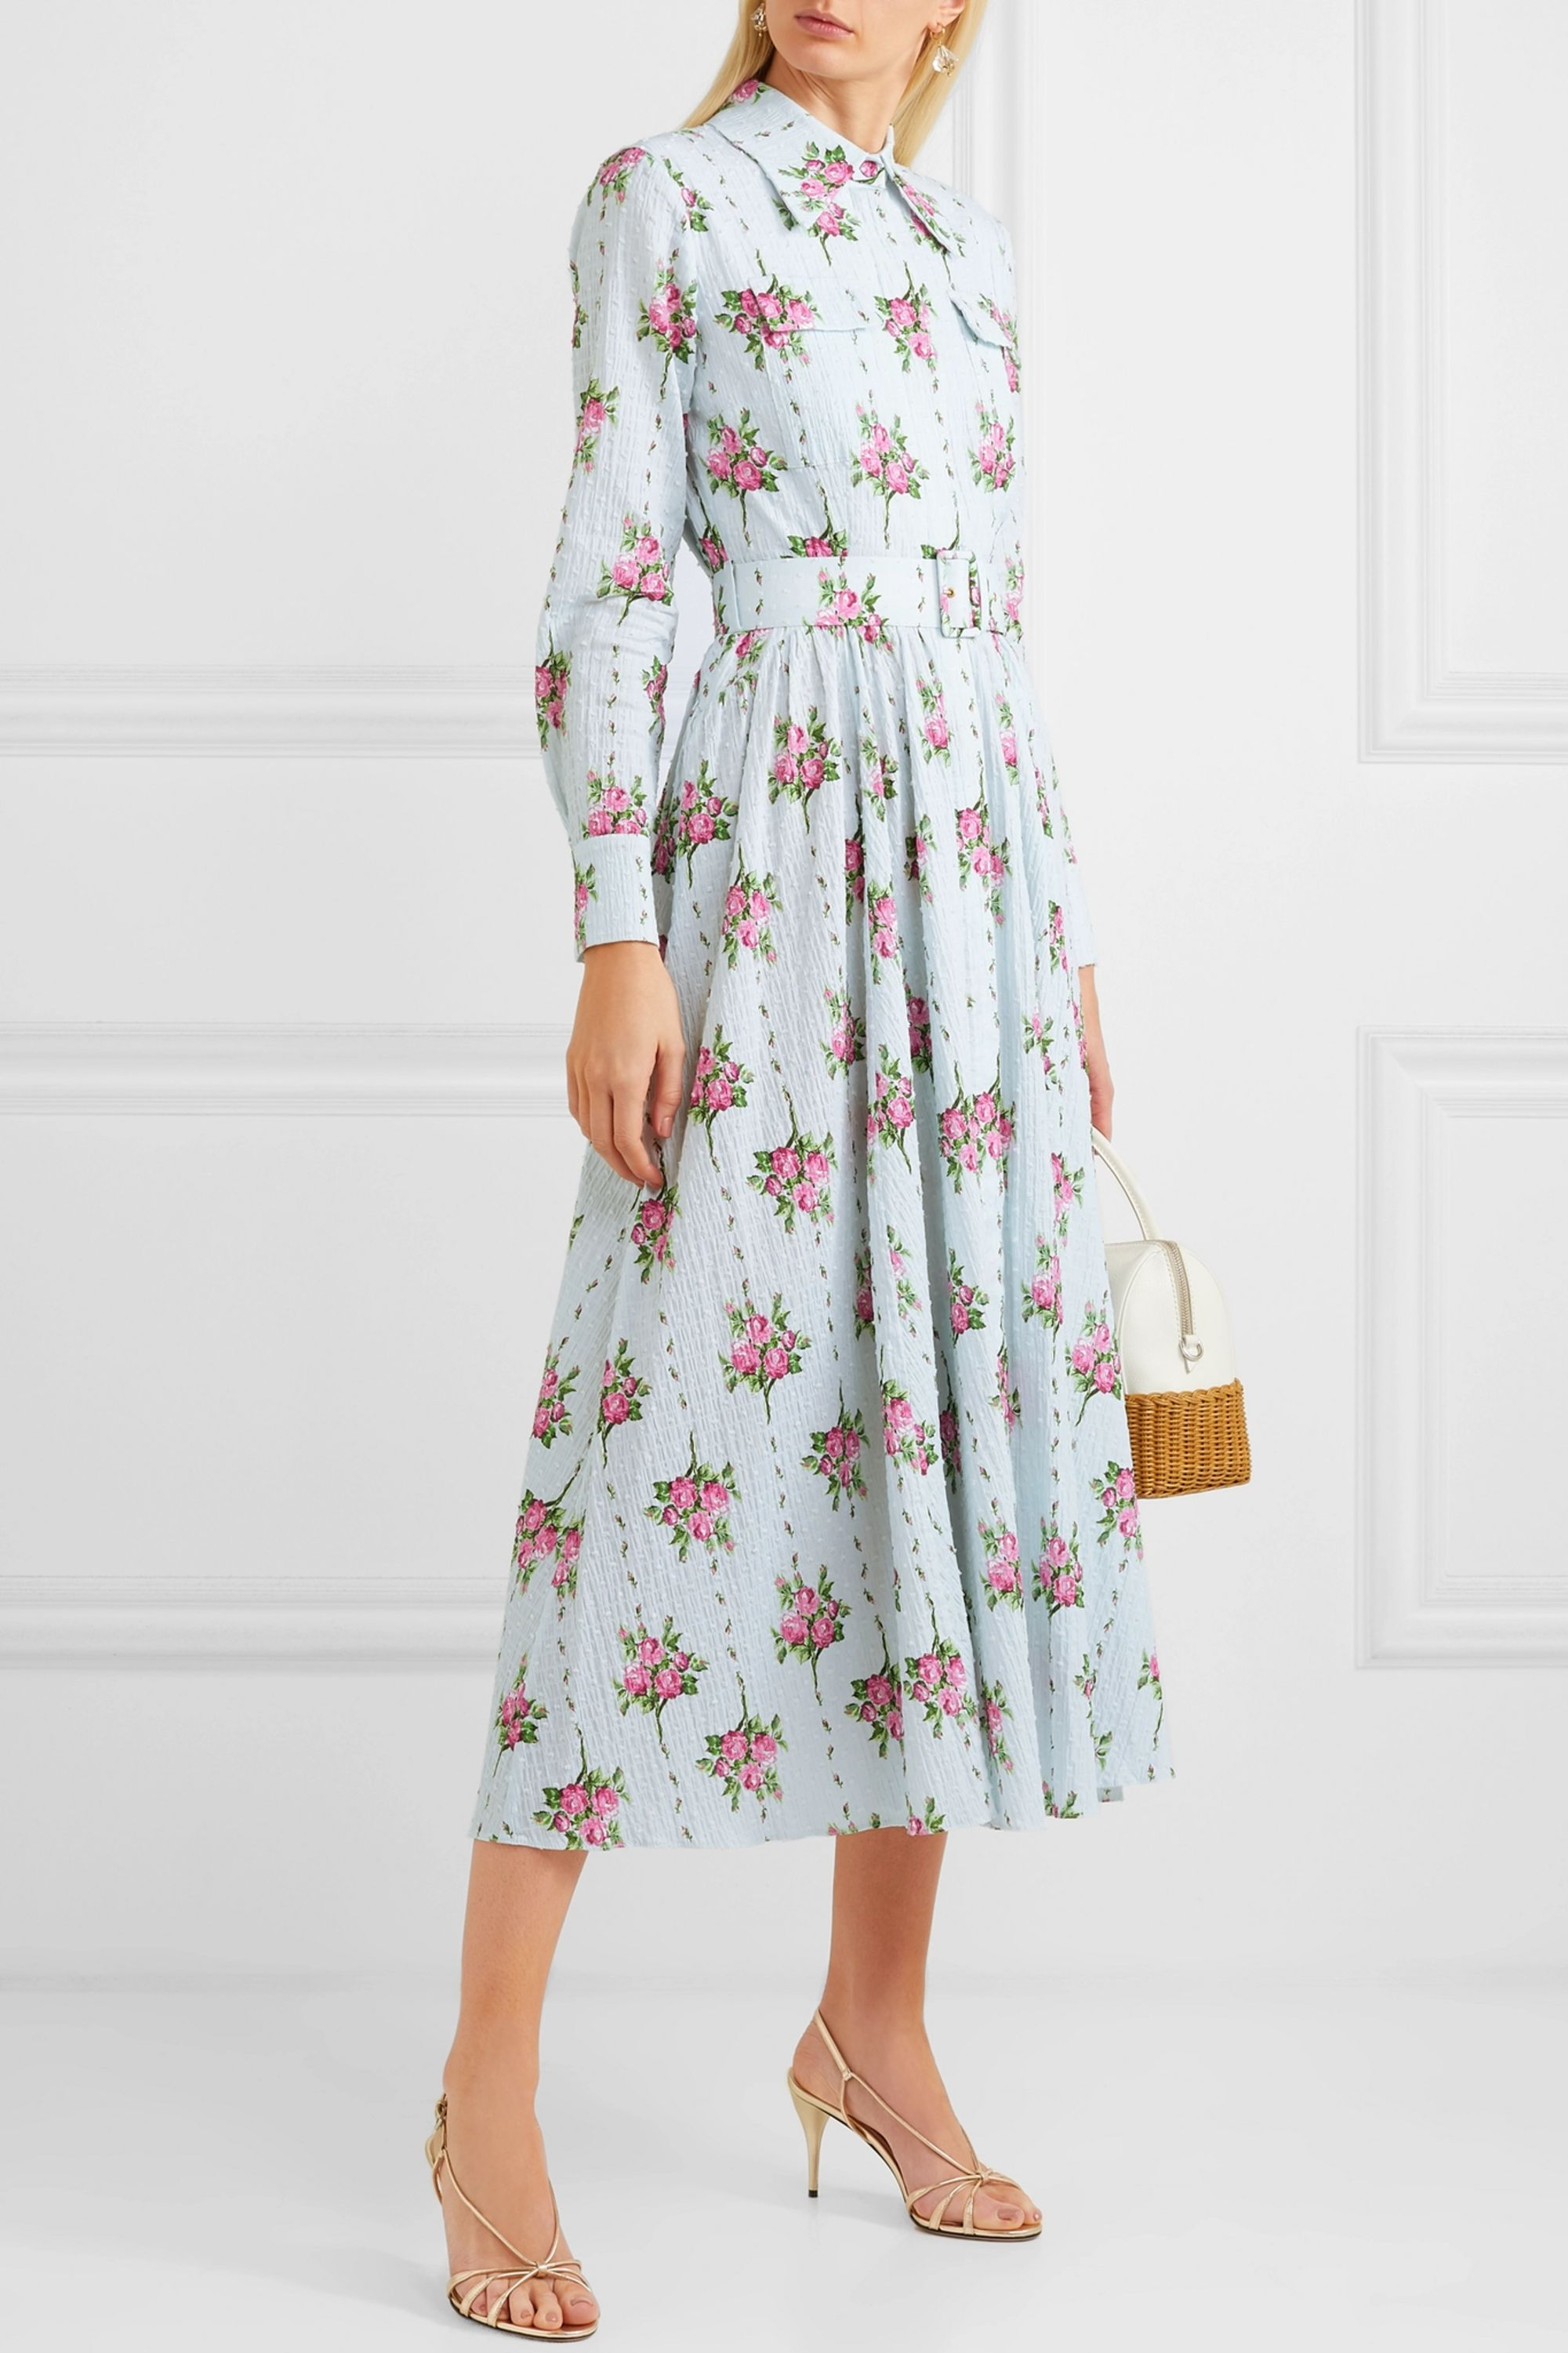 Aurora belted floral-print Swiss-dot cotton-blend seersucker dress by EMILIA WICKSTEAD, available on net-a-porter.com for $1127.5 Kate Middleton Dress Exact Product